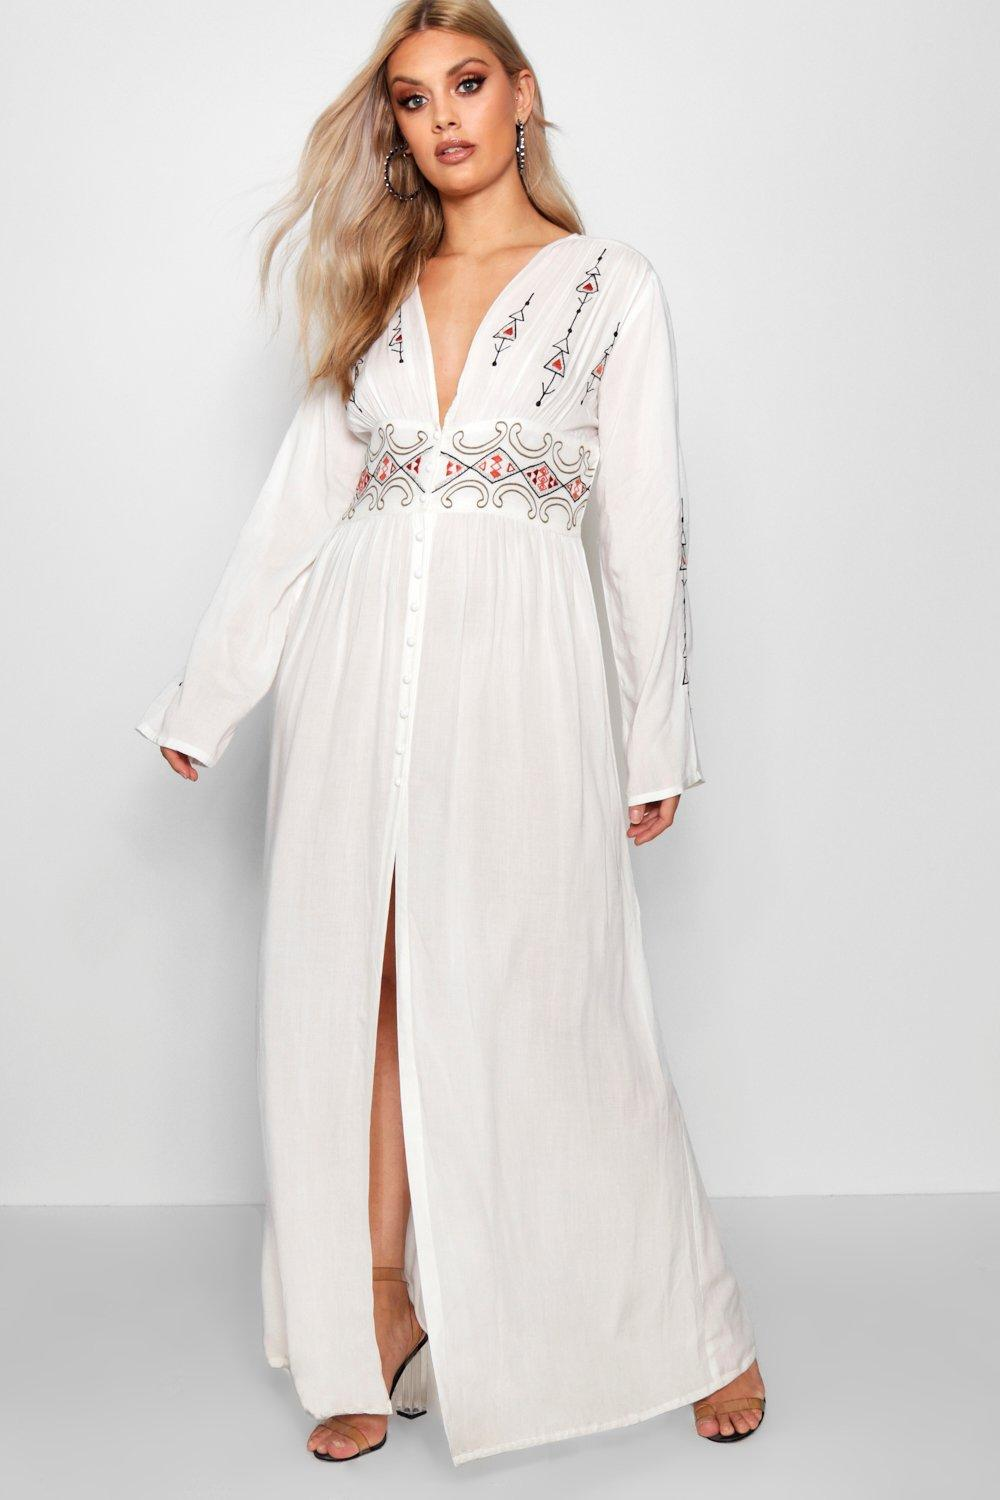 70s Dresses – Disco Dress, Hippie Dress, Wrap Dress Womens Plus Embroidered Plunge Maxi Dress - White - 16 $20.00 AT vintagedancer.com